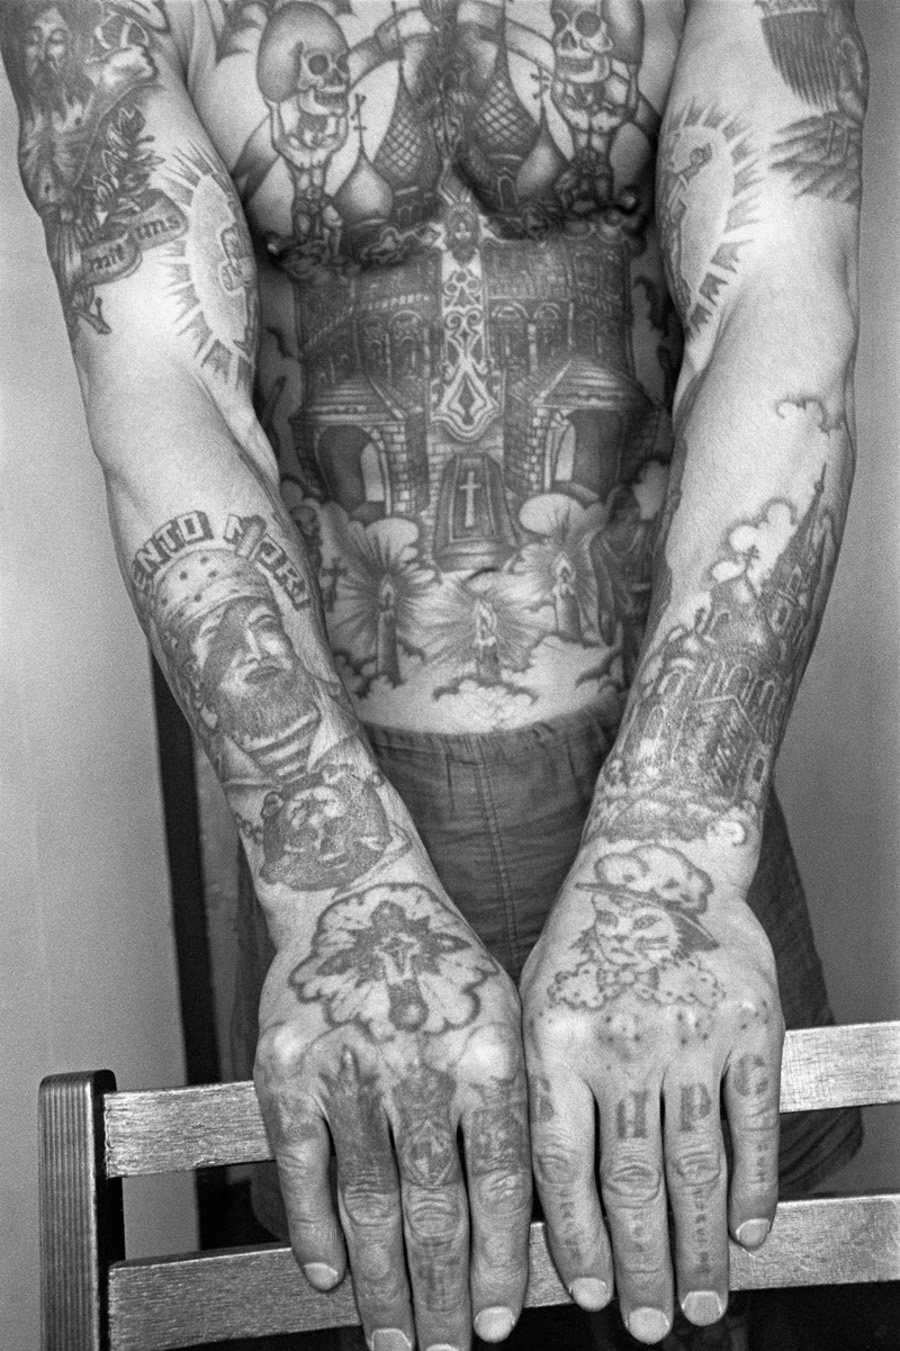 Decoding the hidden meaning behind Russian prison tattoos (Photos)